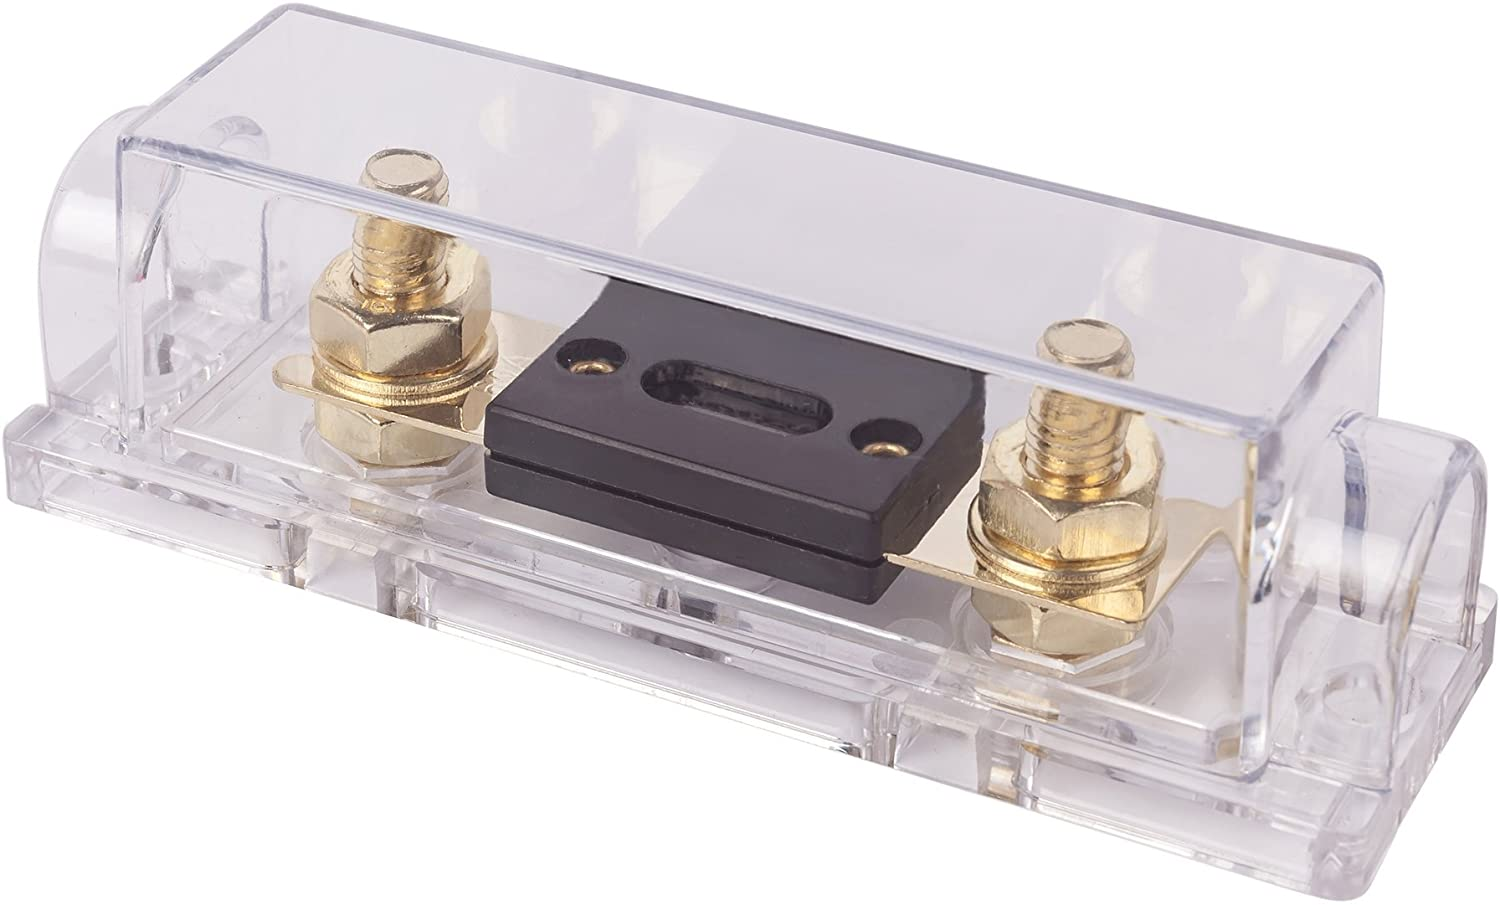 ANL Fuse holder with fuse 1